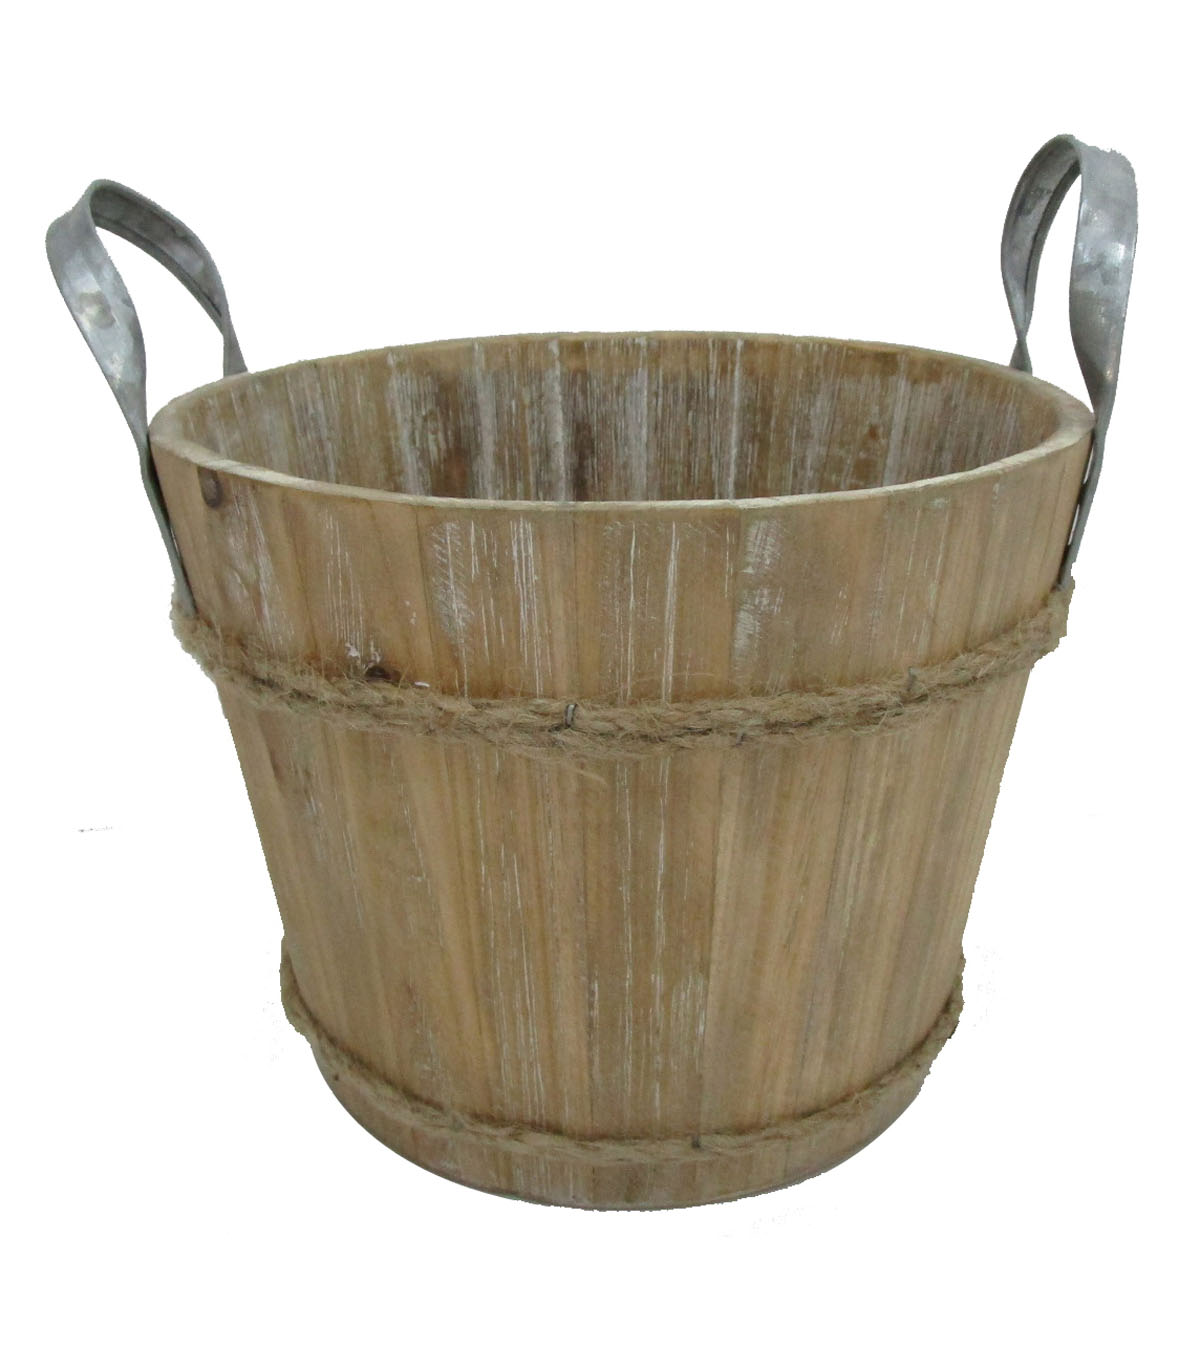 Blooming Autumn Large Wooden Bucket                      Blooming Autumn Large Wooden Bucket by Blooming Autumn